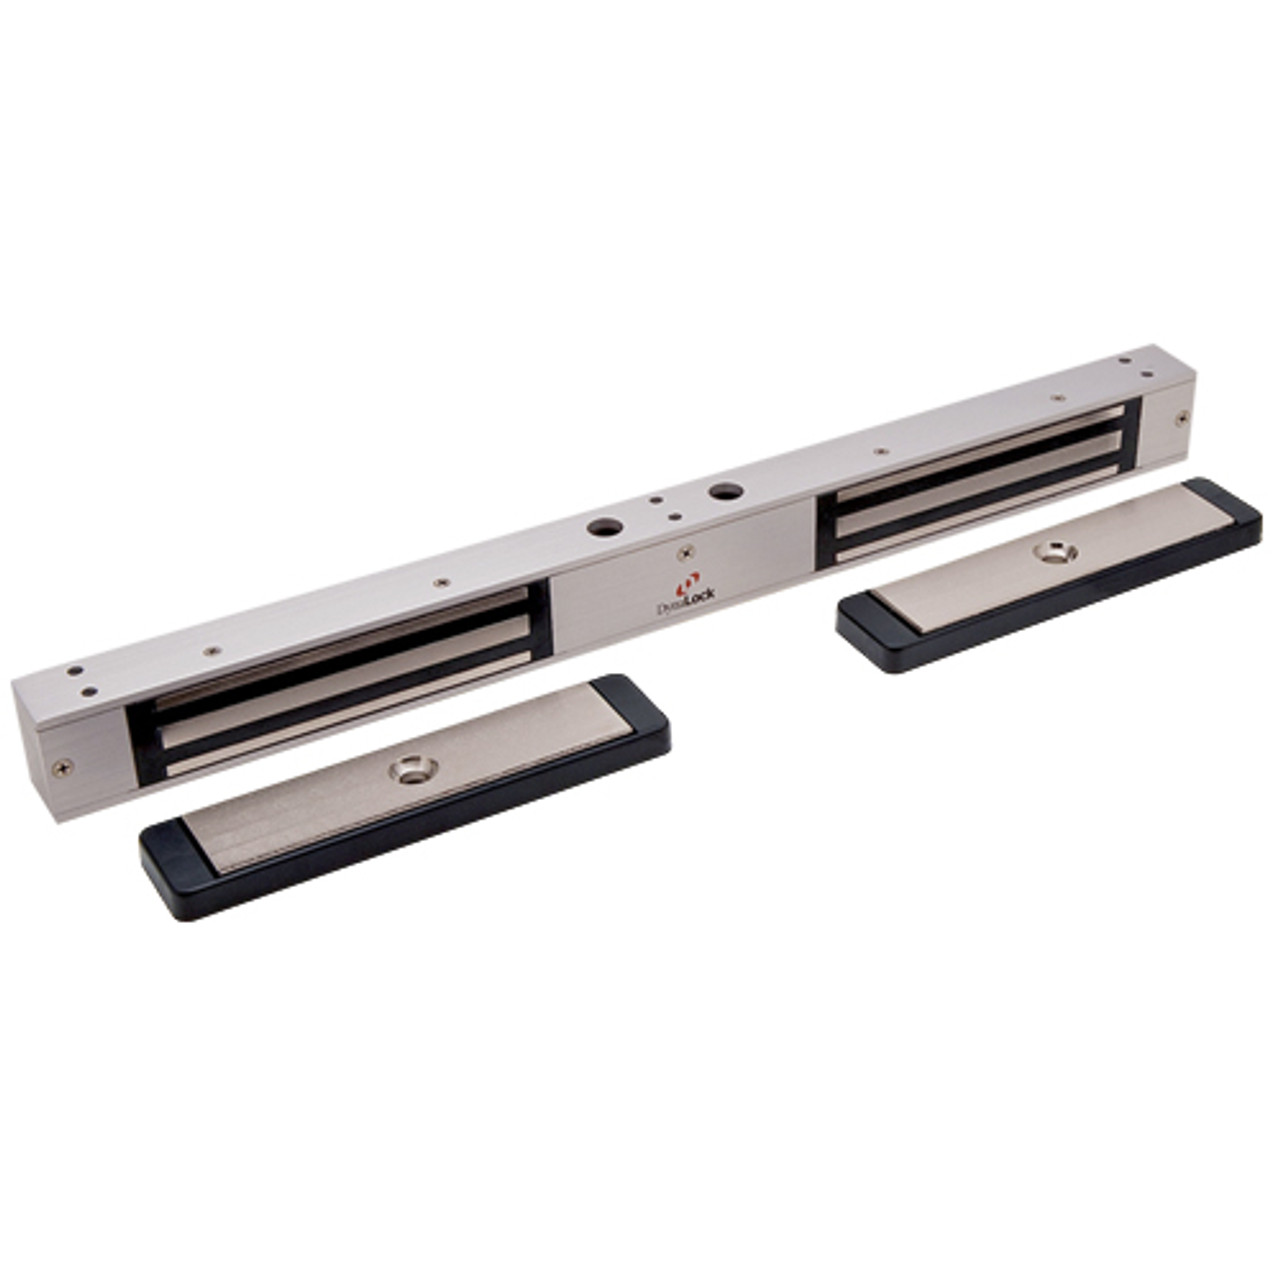 2522-US28-DSM2-DYN2 DynaLock 2500 Series Mini-Mag Double Electro-mag Lock for Outswing Door with Door Status Switch and DYN in Satin Aluminum